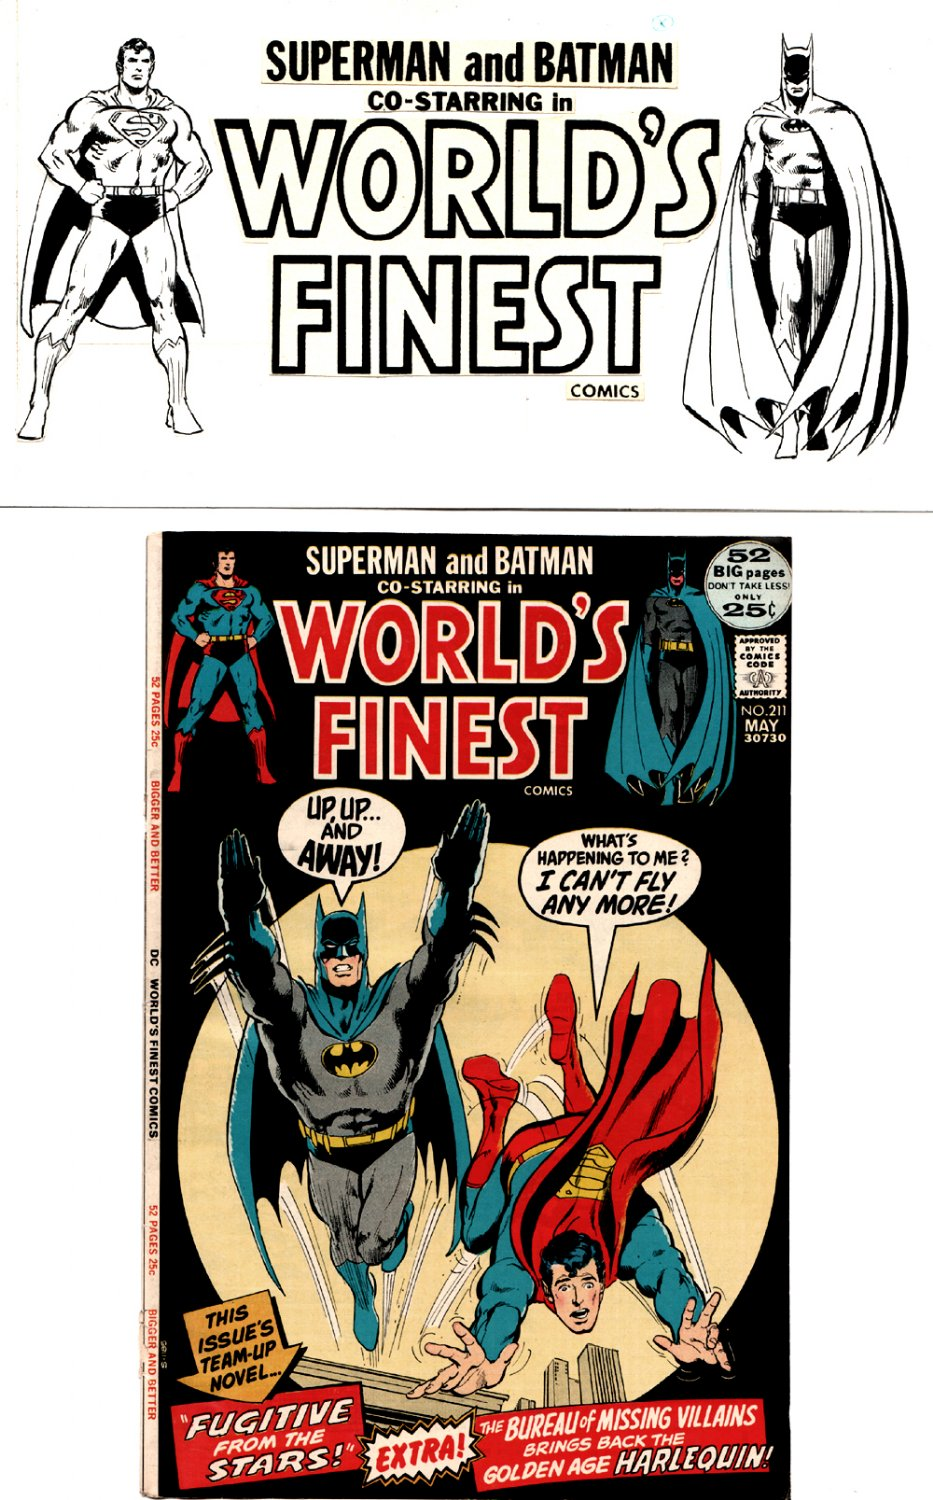 World's Finest Comics: SUPERMAN and BATMAN CORNER BOX ART FOR ISSUES 211-217 (1971)